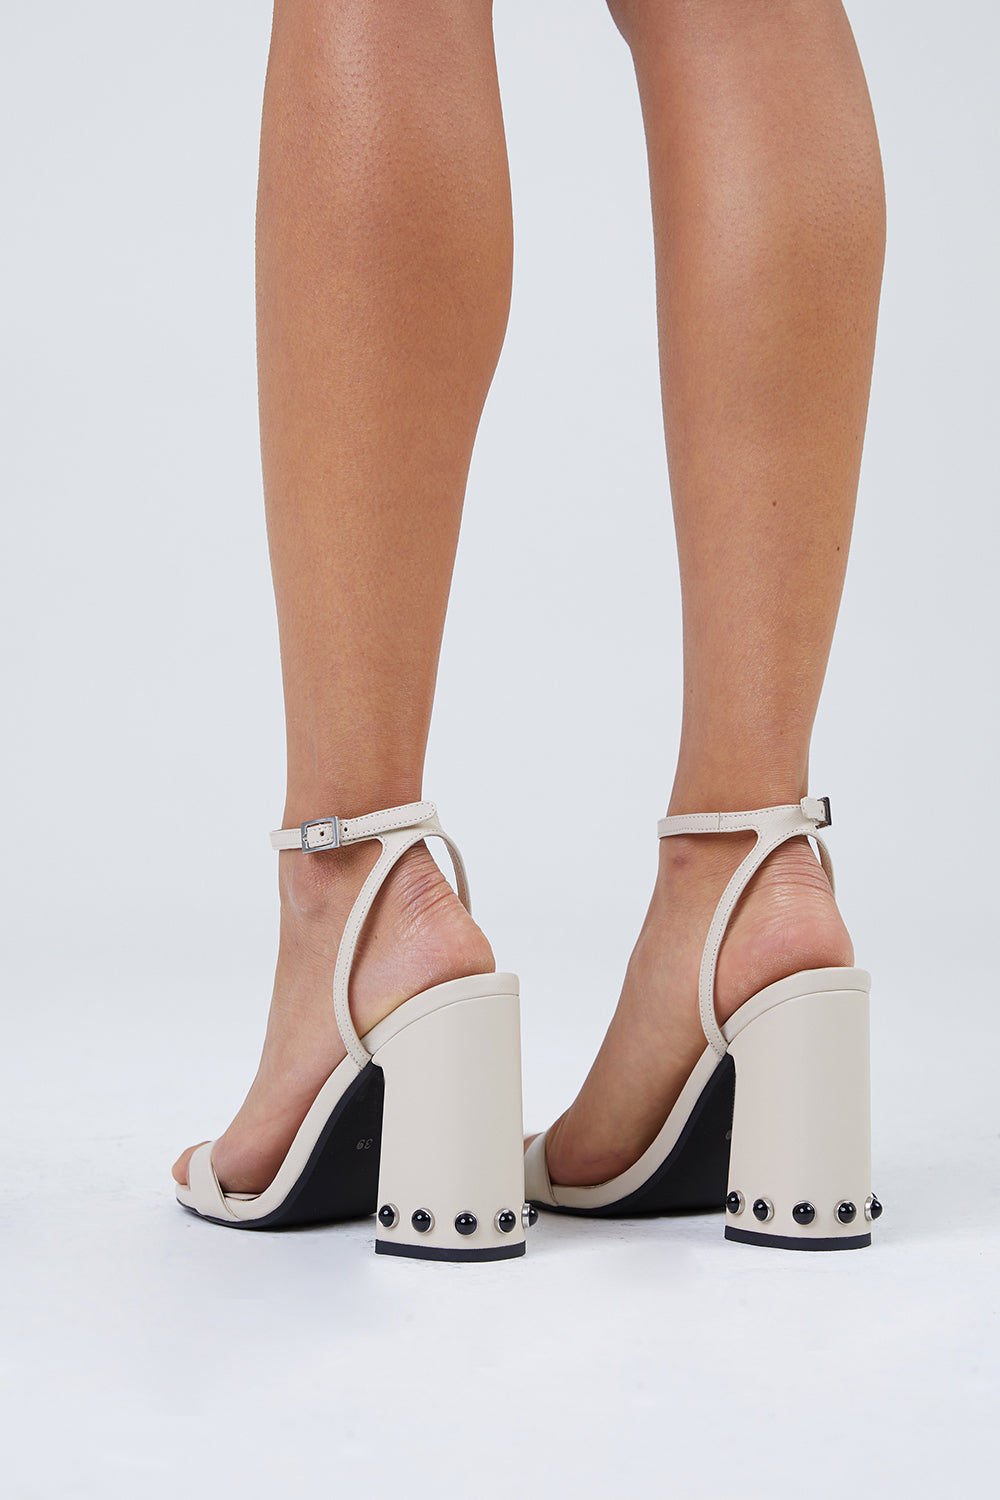 SENSO Yella Chunky Heels - Ivory White Shoes | Ivory White| Senso Yella Chunky Heel Sandals - Ivory White. Features:  Leather heeled sandals Open Toe Stud detailing Ankle buckle fastening Square heel  Back View